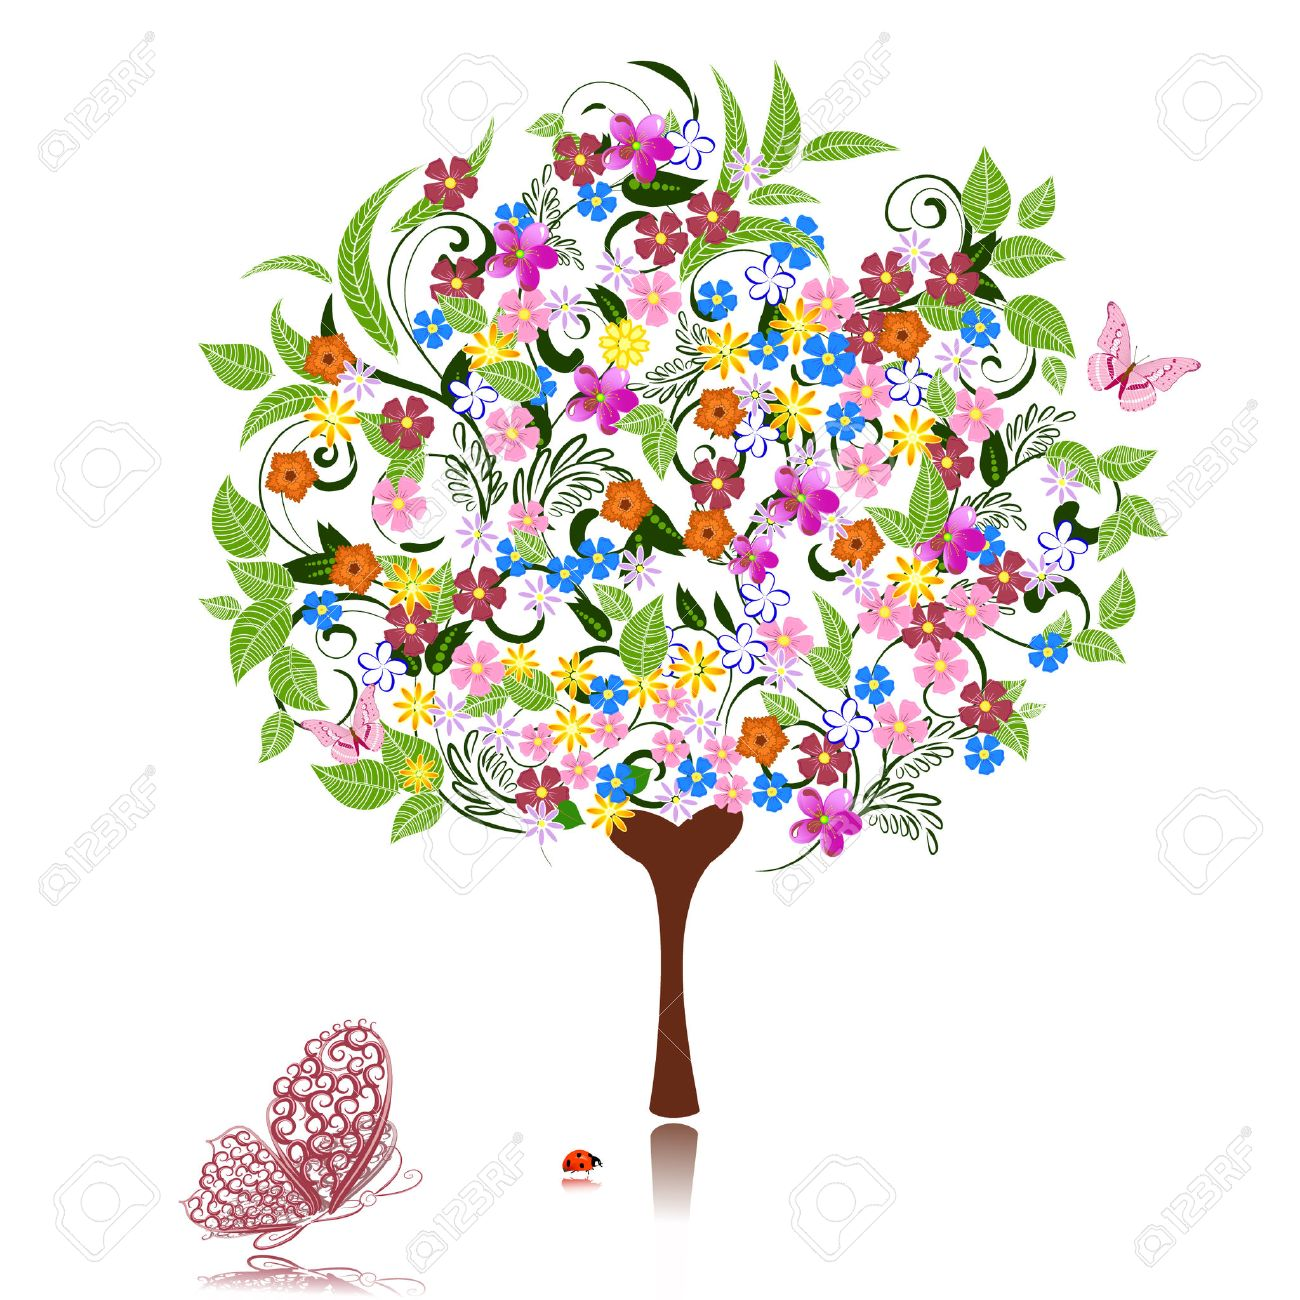 abstract tree with flowers Stock Vector - 8132919